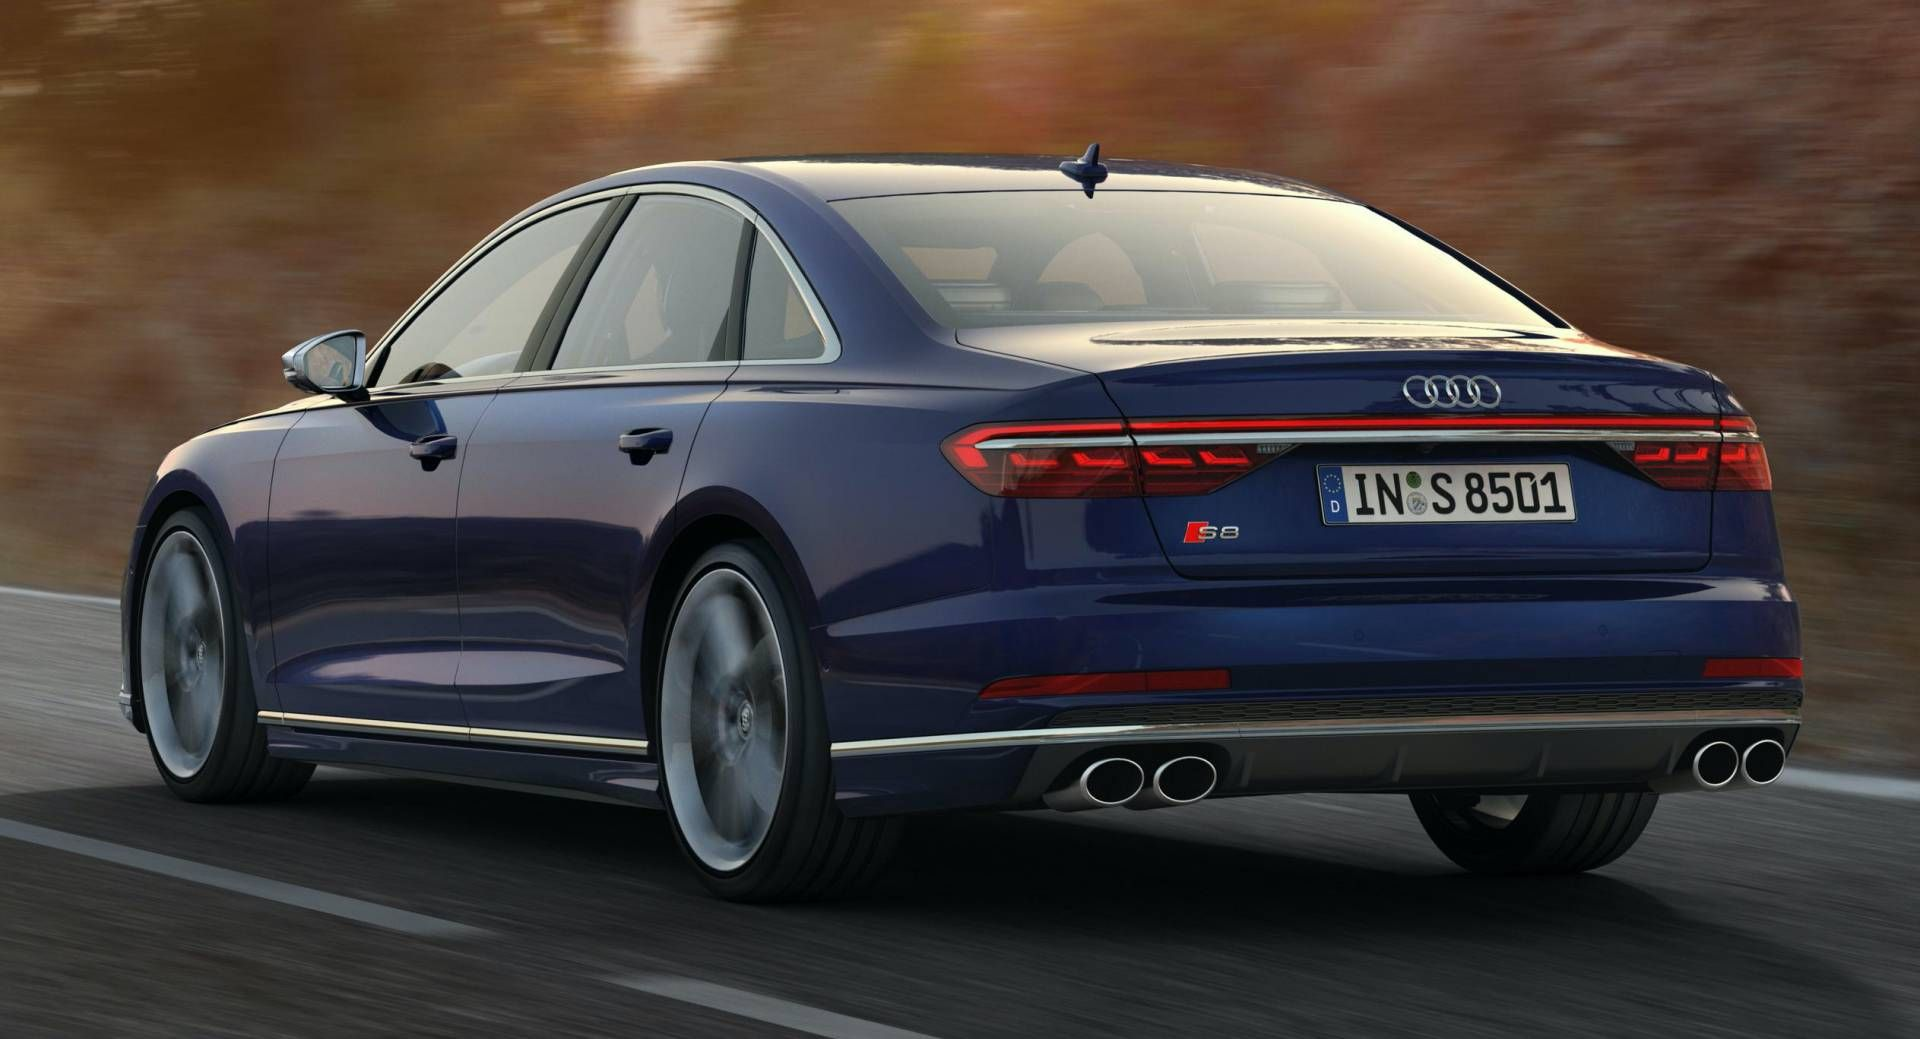 2020 Audi S8 Coming To LA, A8 TFSI e PHEV Confirmed For U